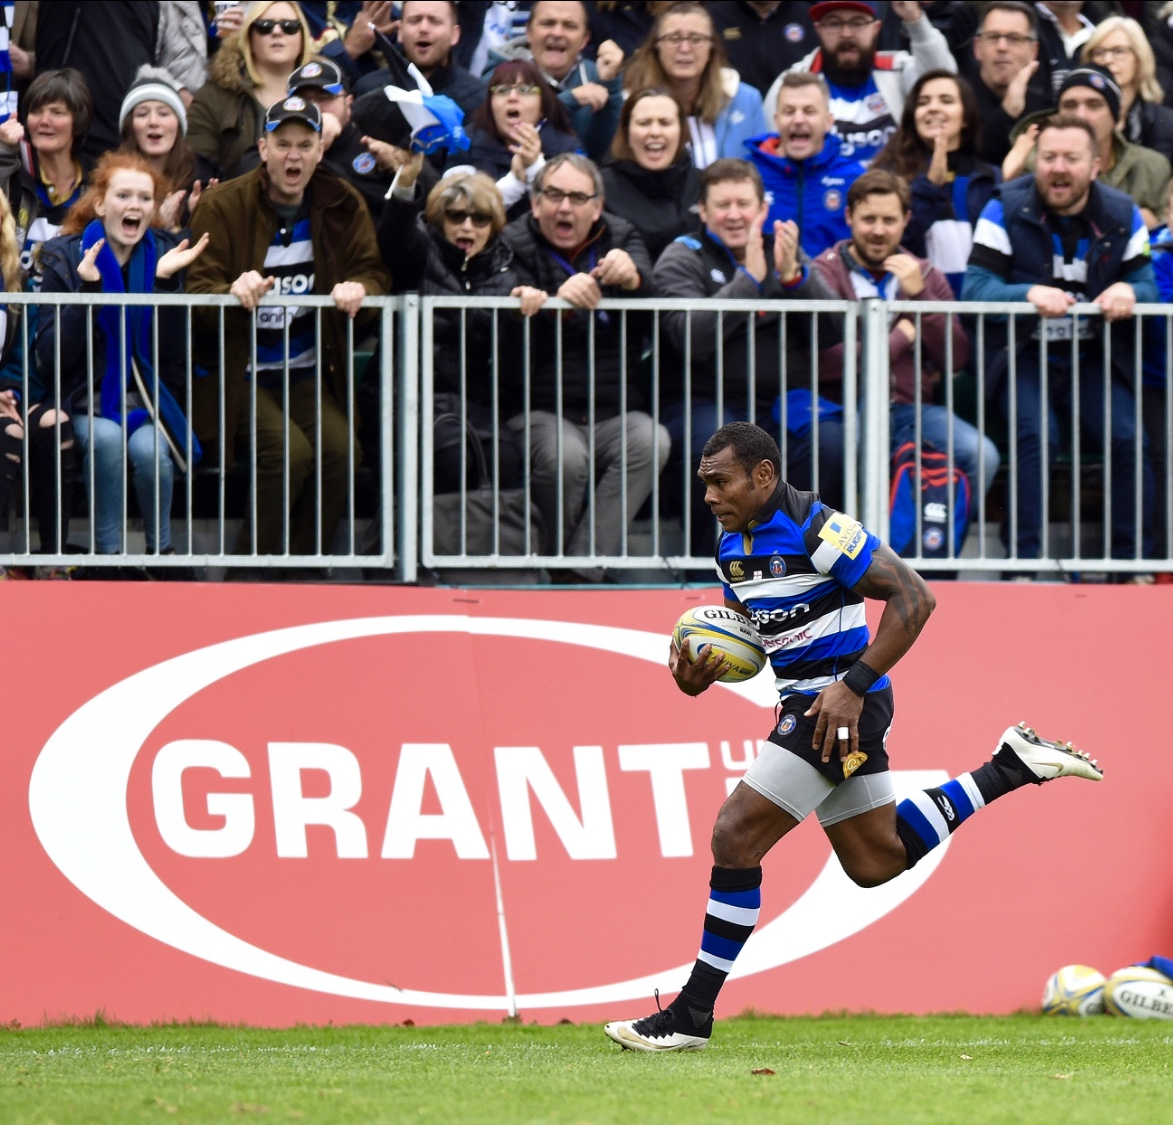 Grant Uk Extends Business Partnership With Bath Rugby Club For Another Season